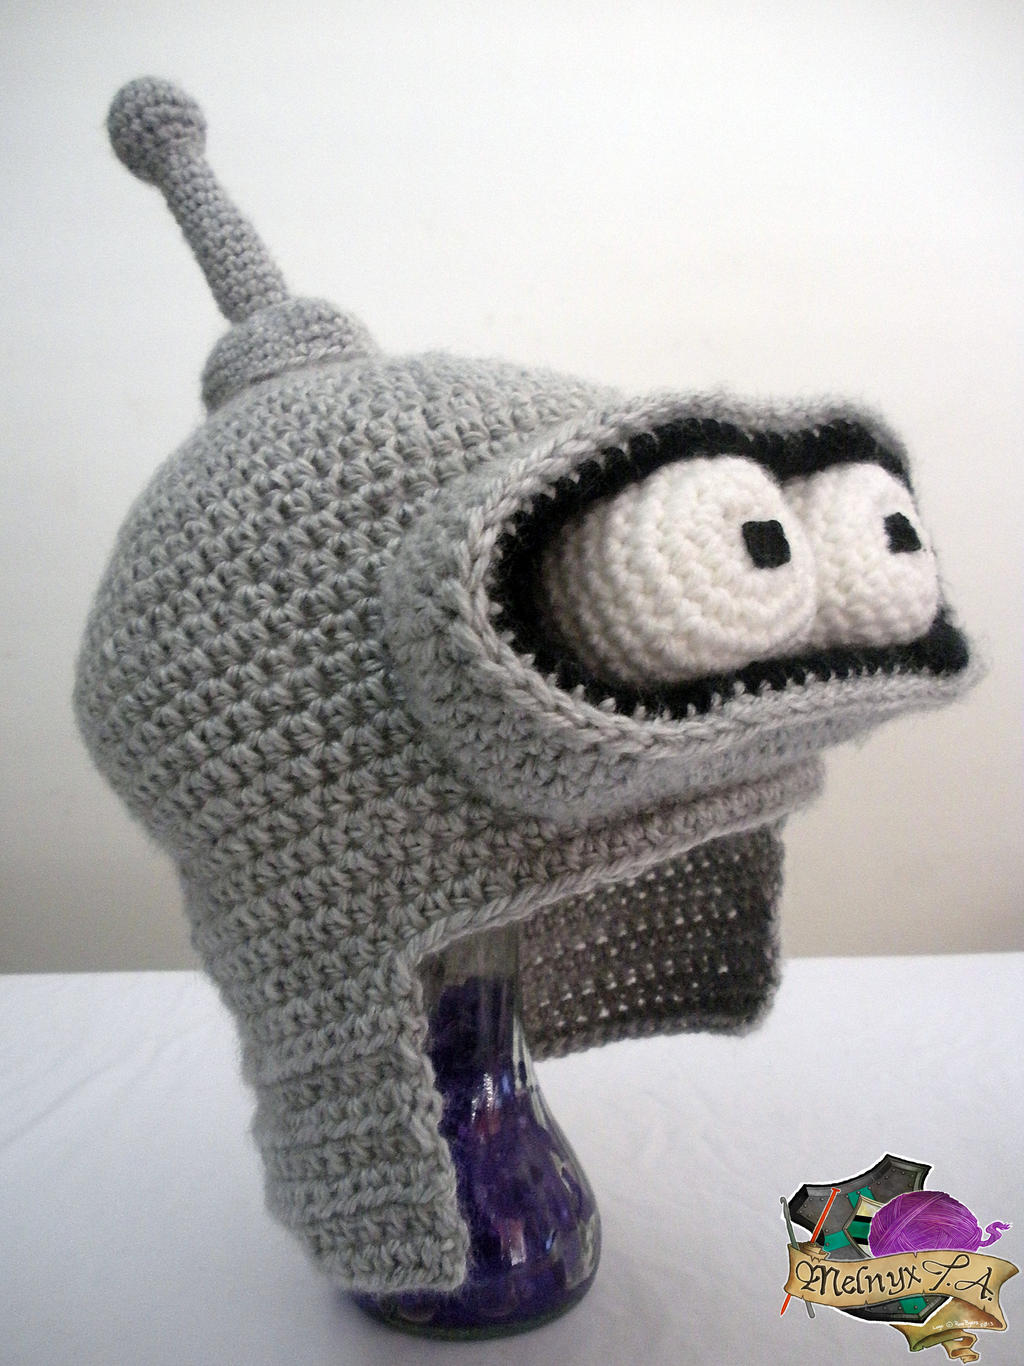 Crocheted bender hat by melibusla on deviantart for Crochet crafts that sell well